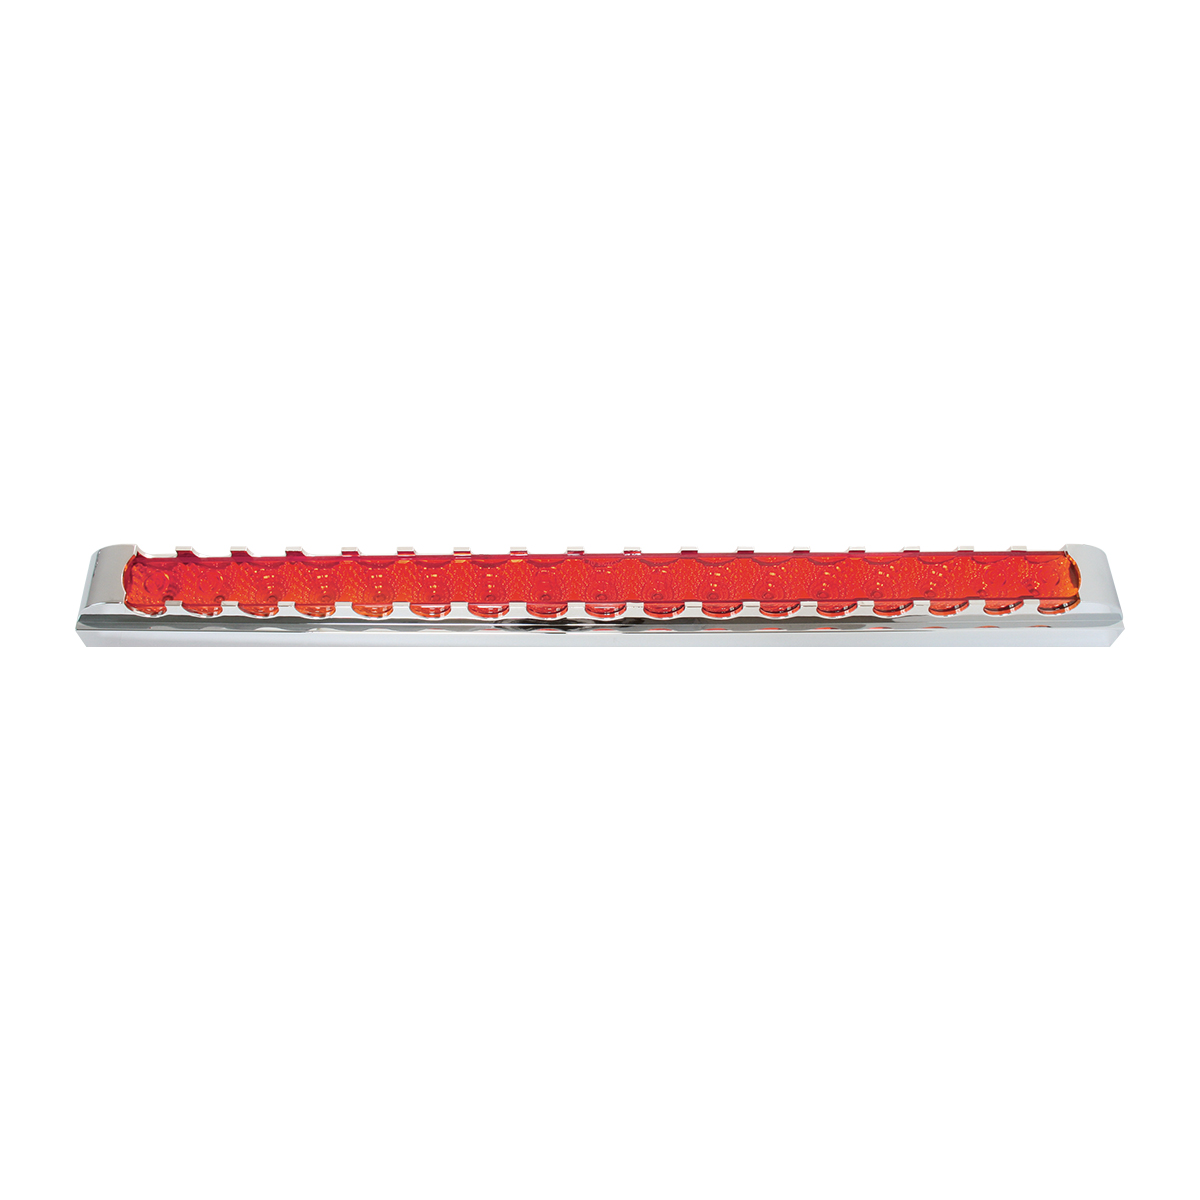 "76302 20"" Spyder LED Light Bar w/ Chrome Plastic Bezel"